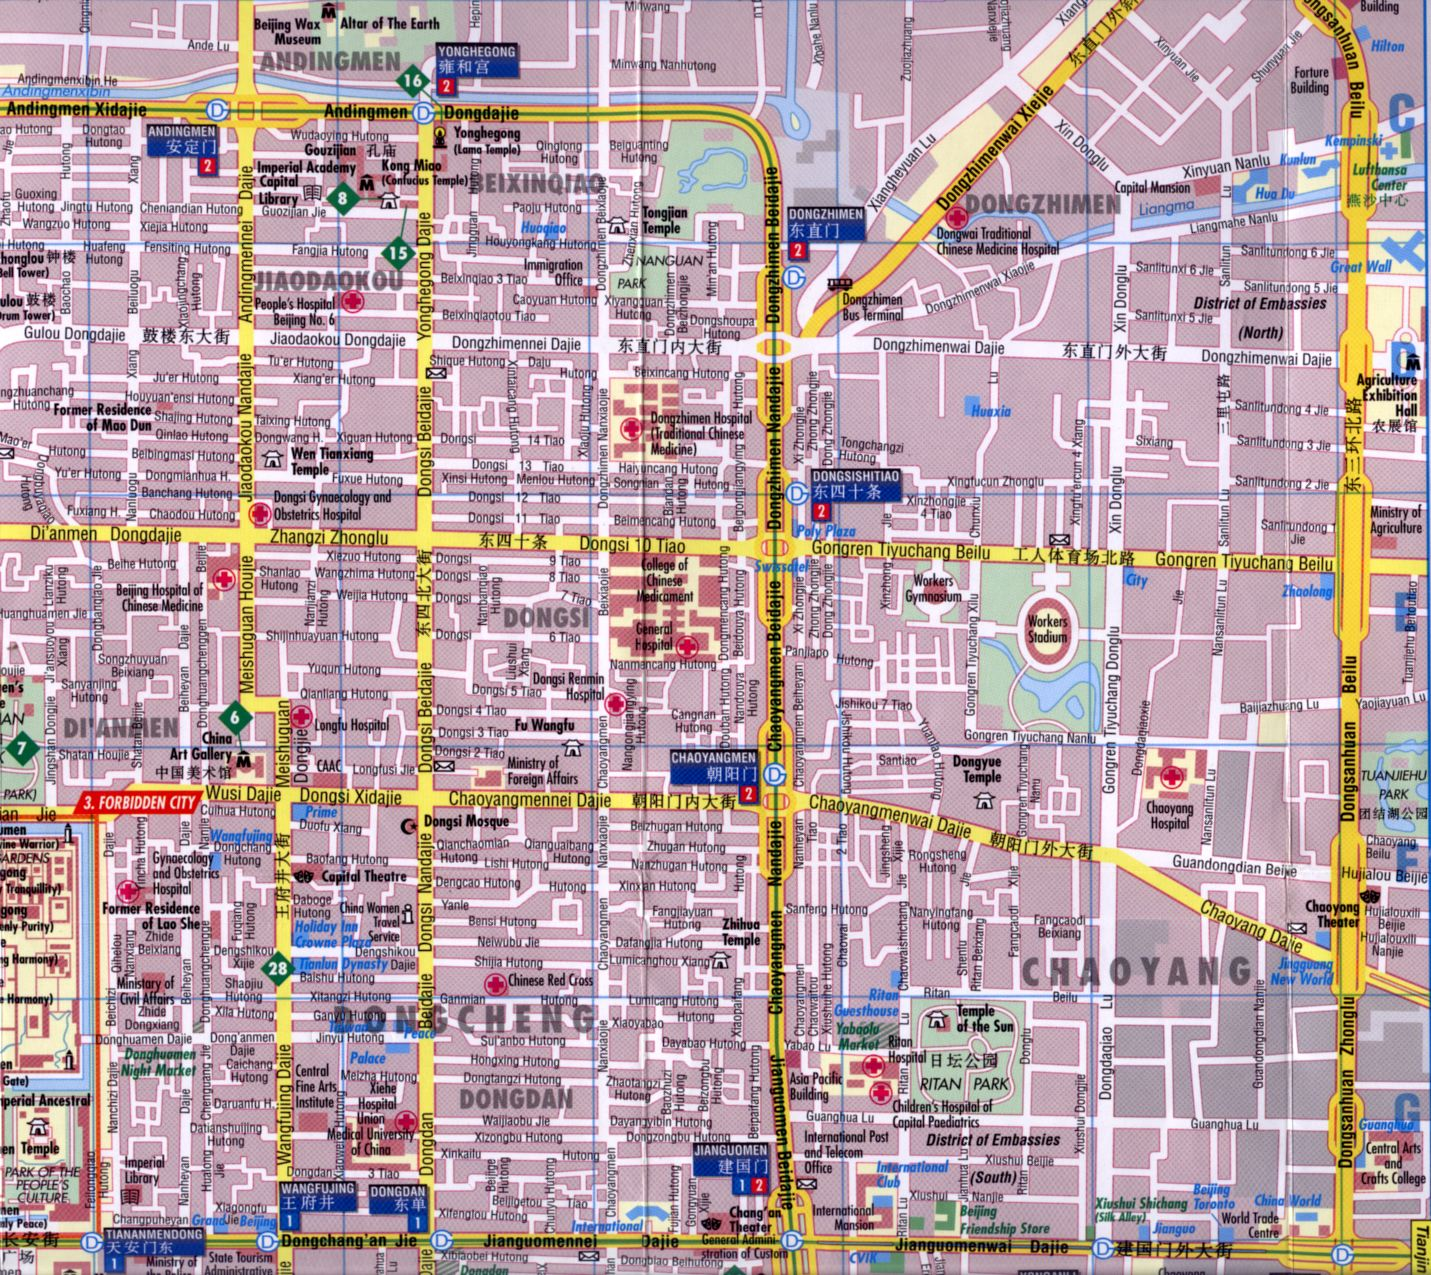 Shaoyang China  City pictures : Beijing Chaoyang District Maps Index, All Maps Menu